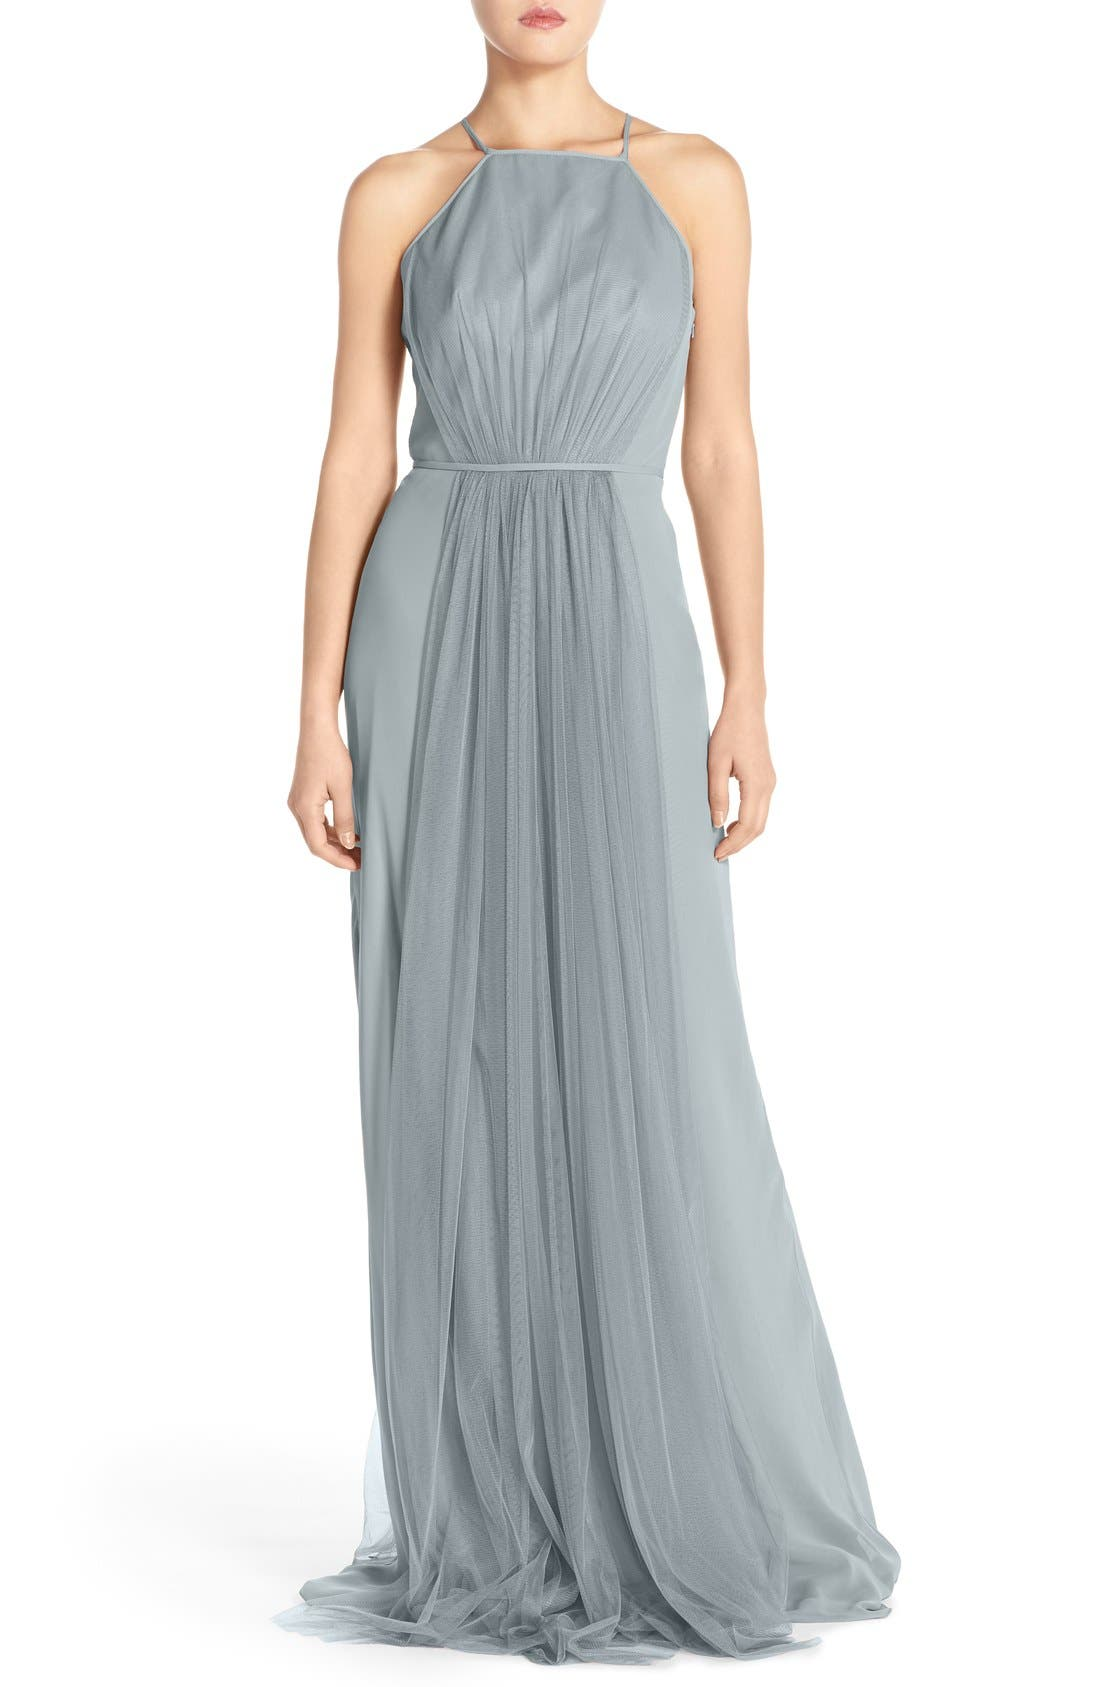 Monique Lhuillier Bridesmaids Chiffon & Tulle Halter Gown